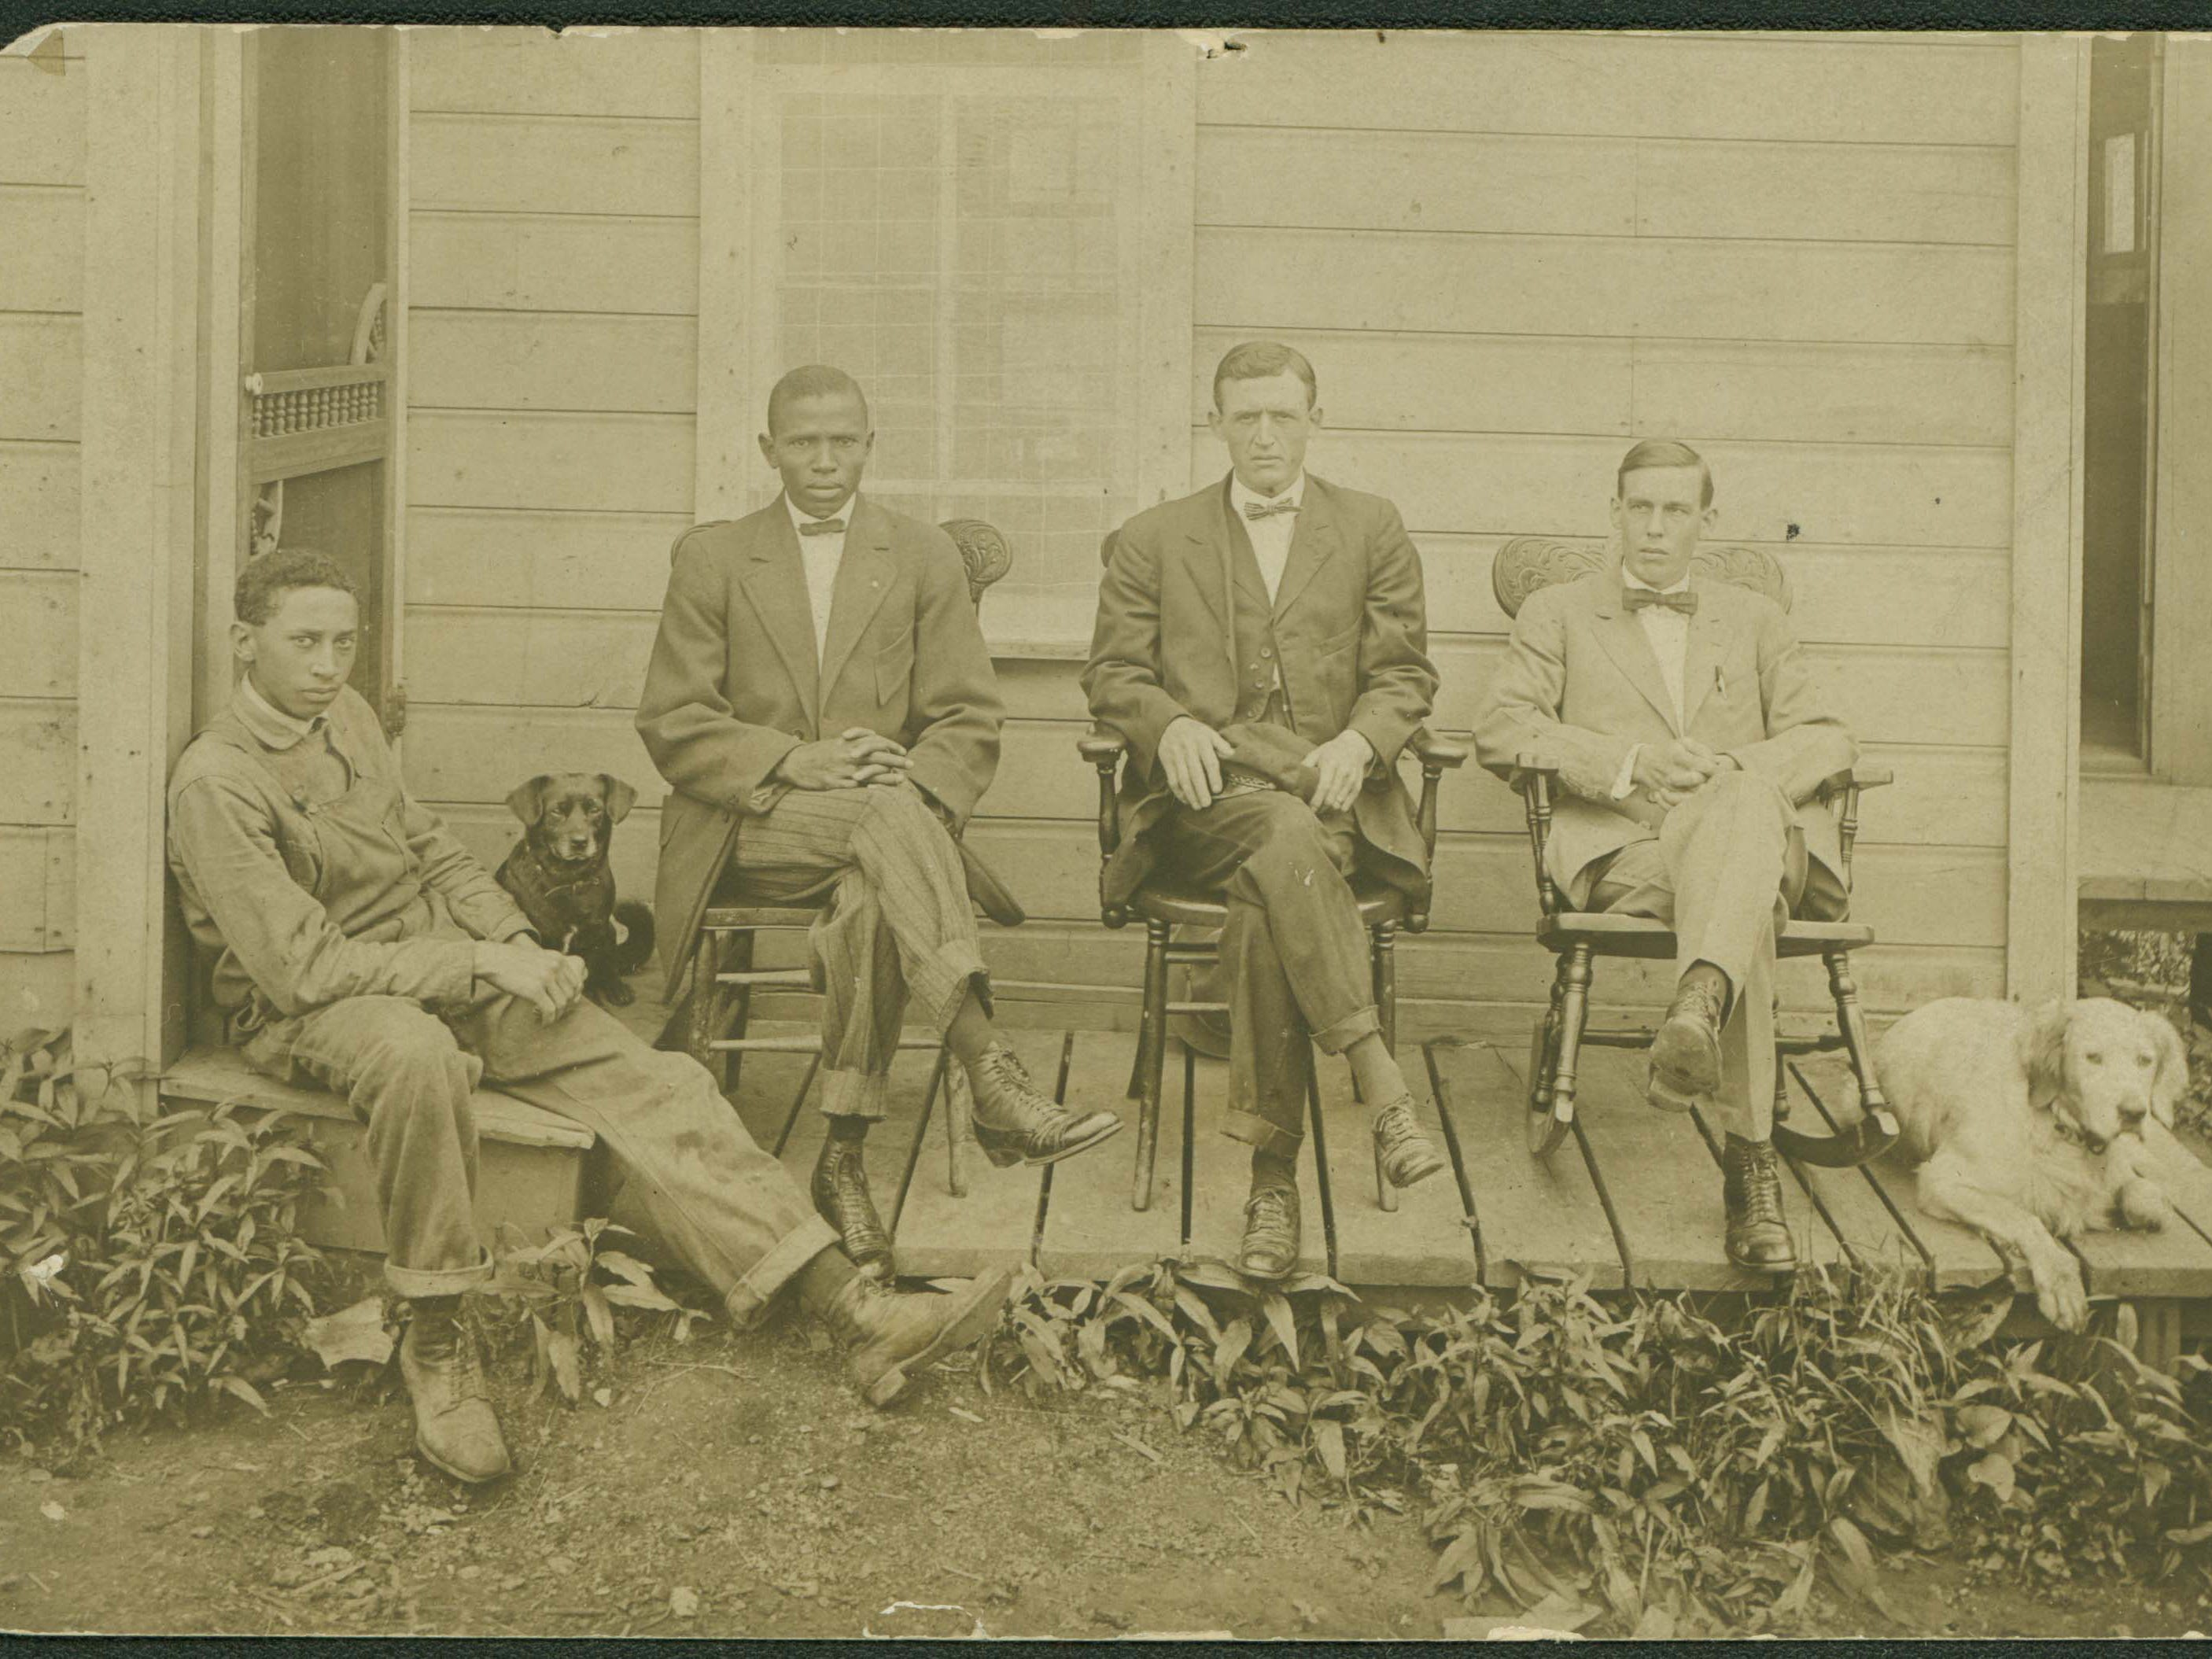 Buxton doctors Carter, Powell, and Gray seated on the porch of their practice with associate James Warren at far left.